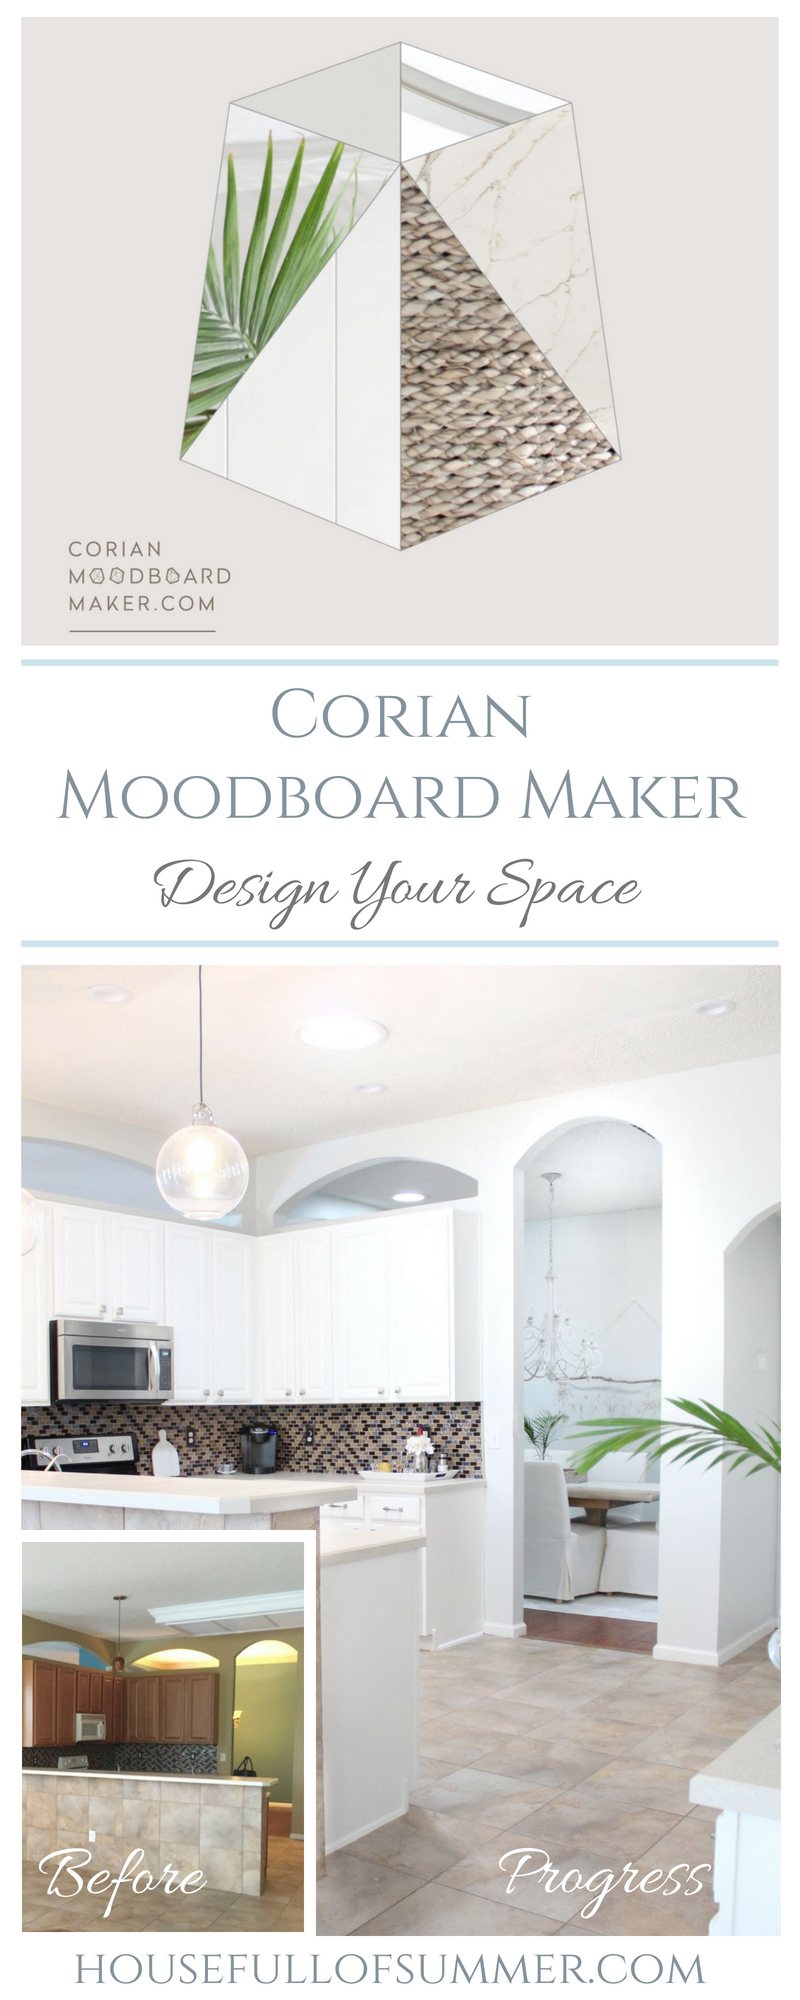 Bring Your Vision to Life With This Unique Mood Board Maker | House Full of Summer #ad before and after, moodboard ideas, room design, interior decorating, home decor, interior design